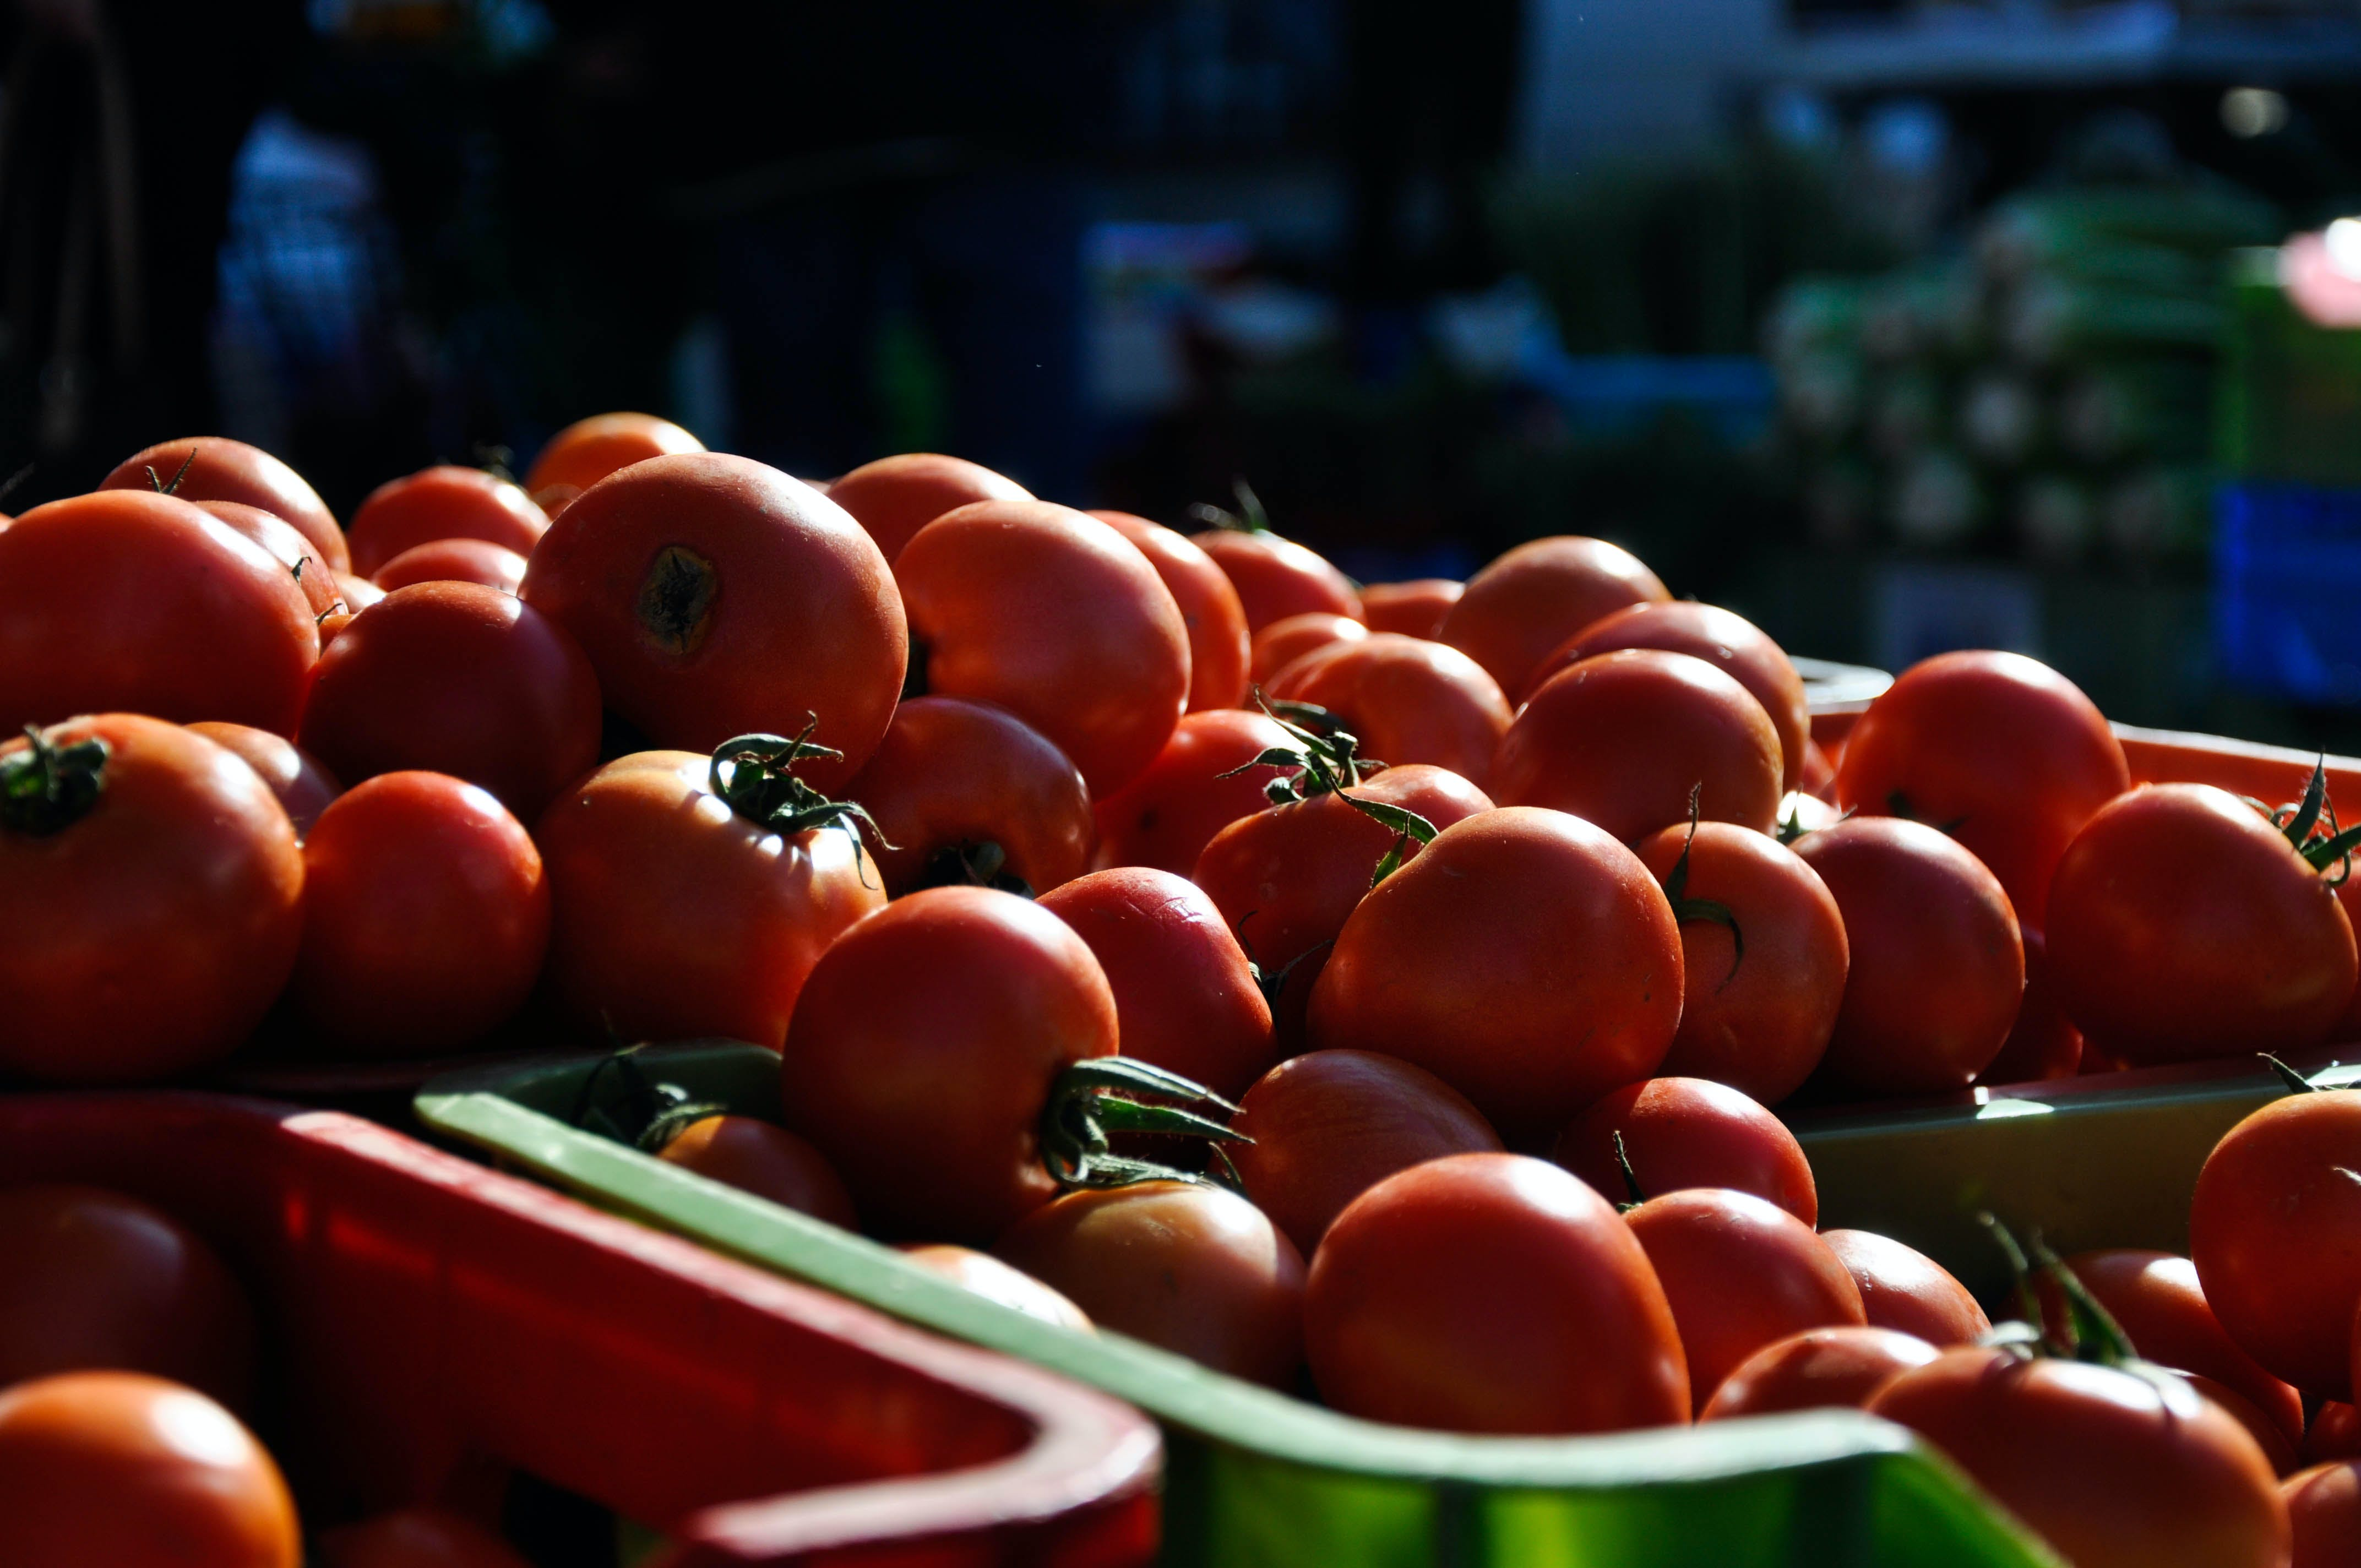 Free stock photo of farmers market, morning sun, tomatoes